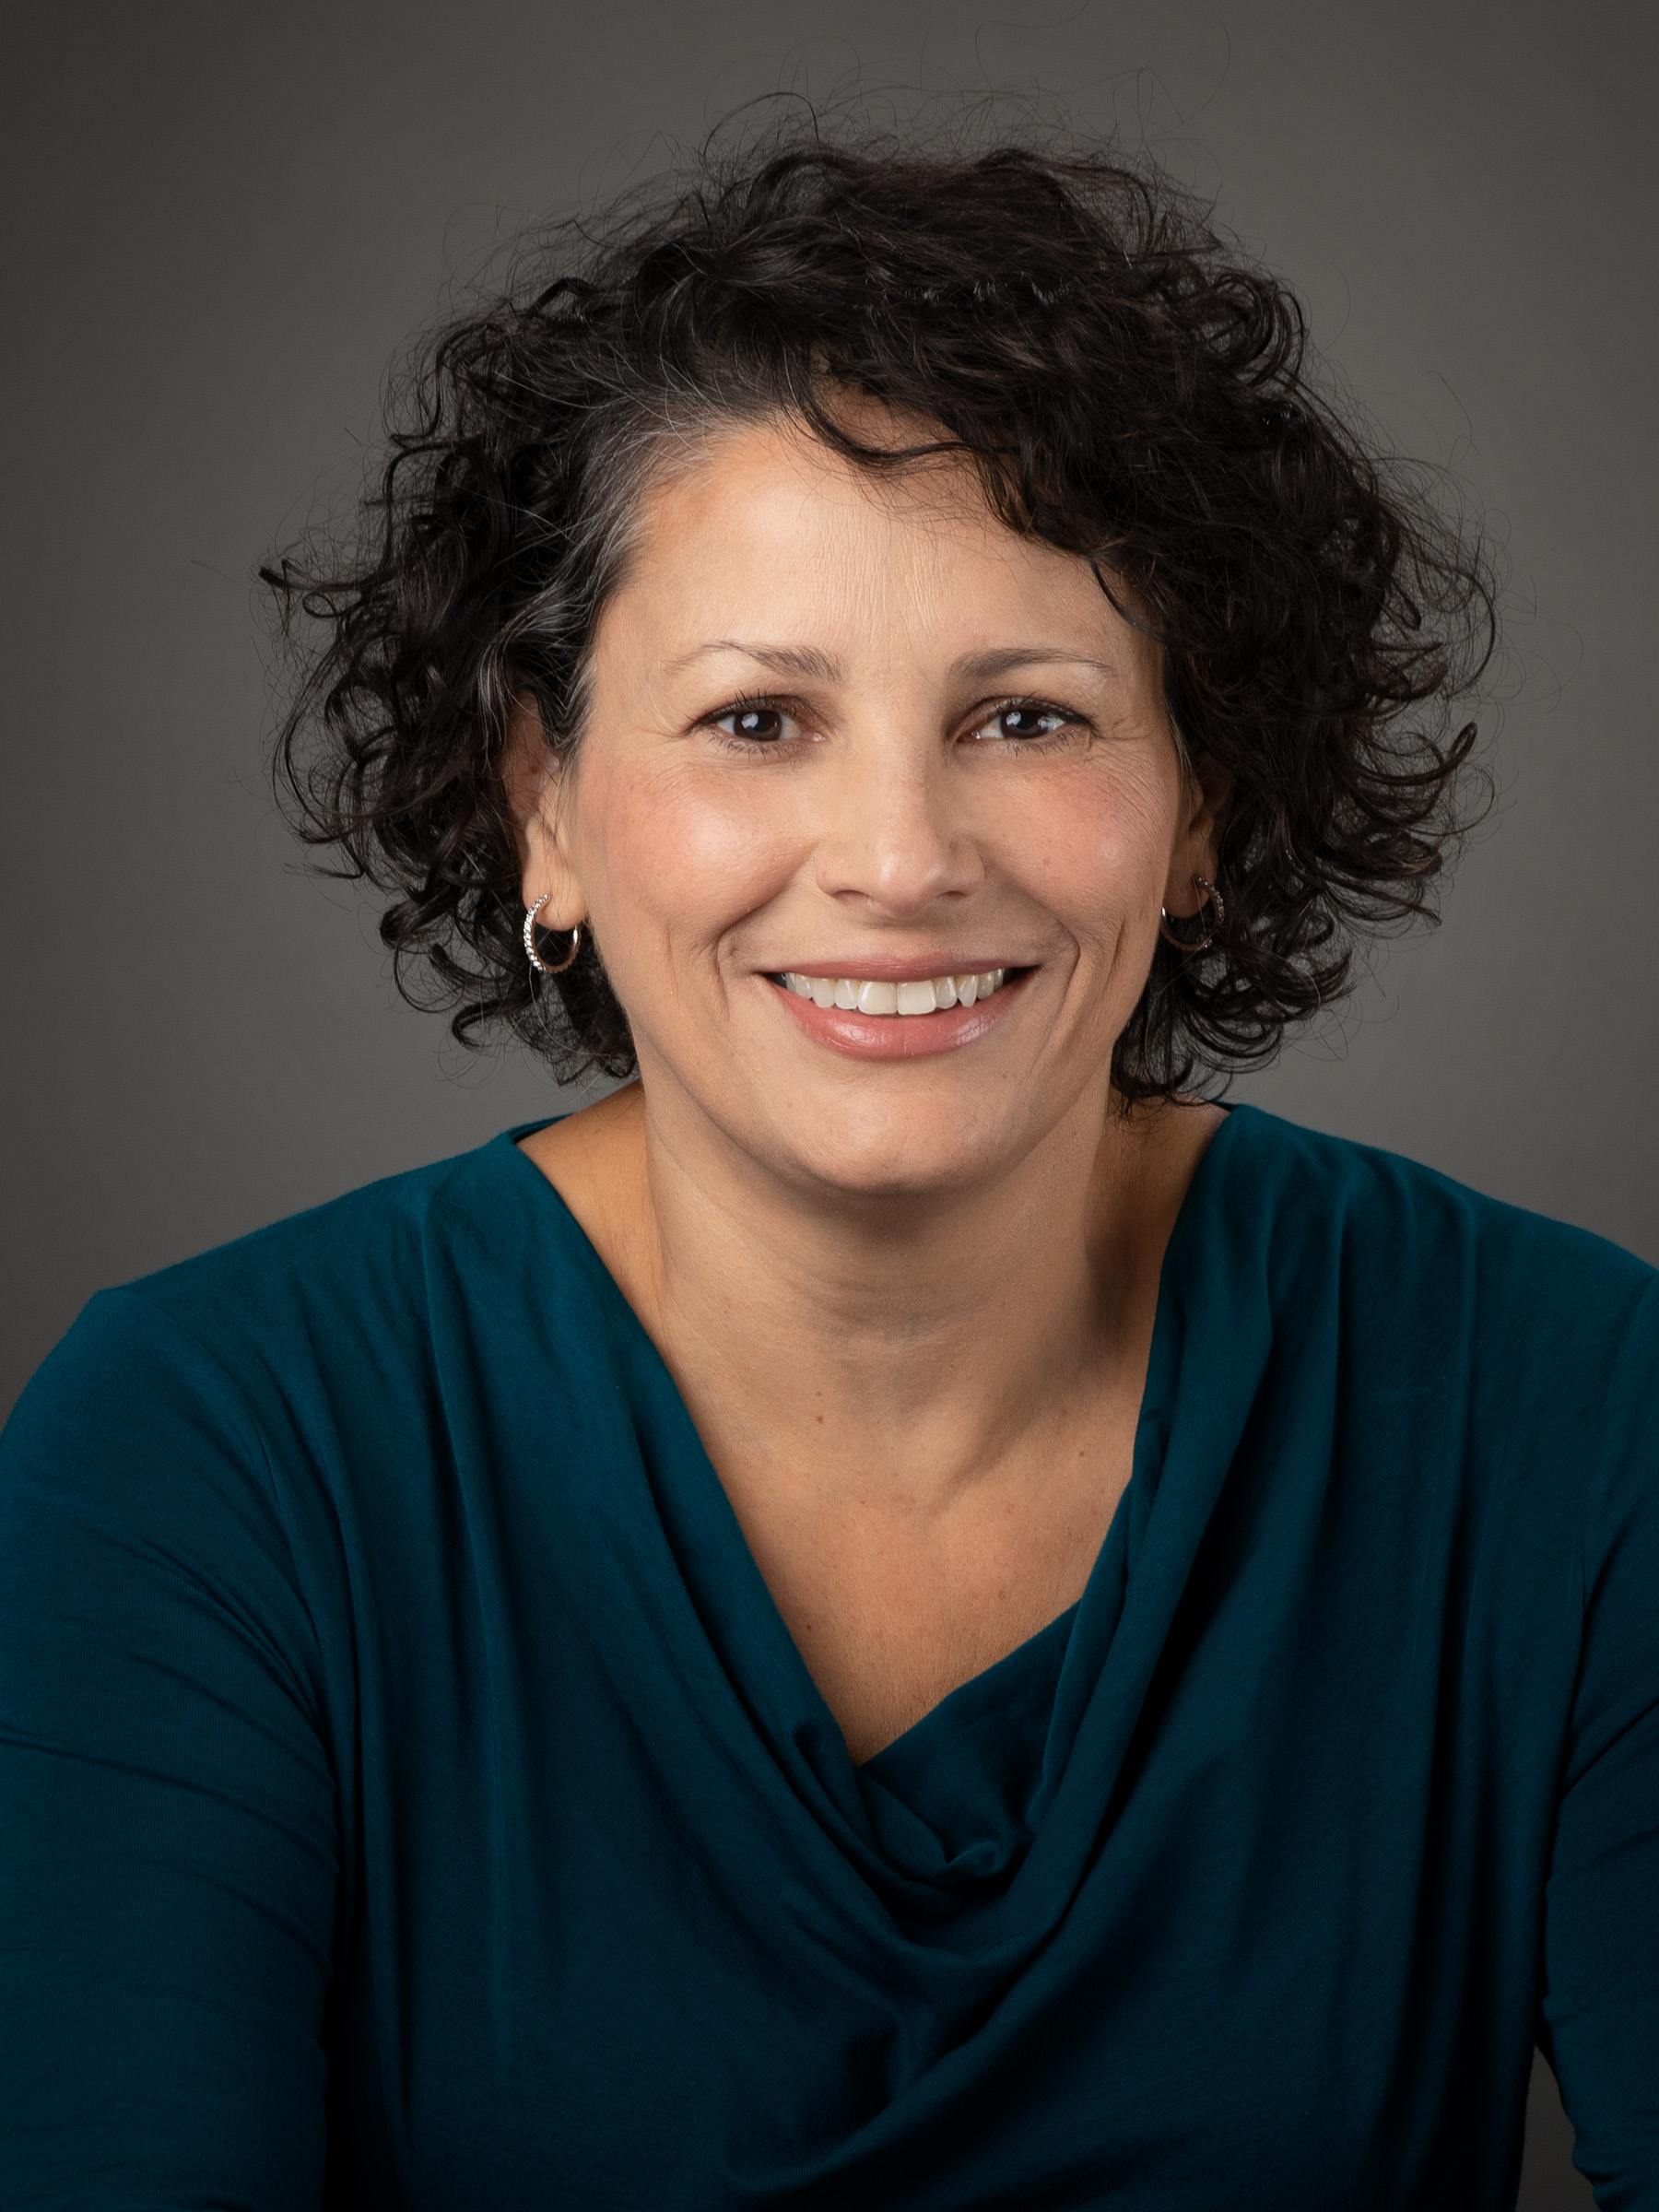 Nina Dippon,  Marriage And Family Therapist Candidate in Colorado Springs, CO